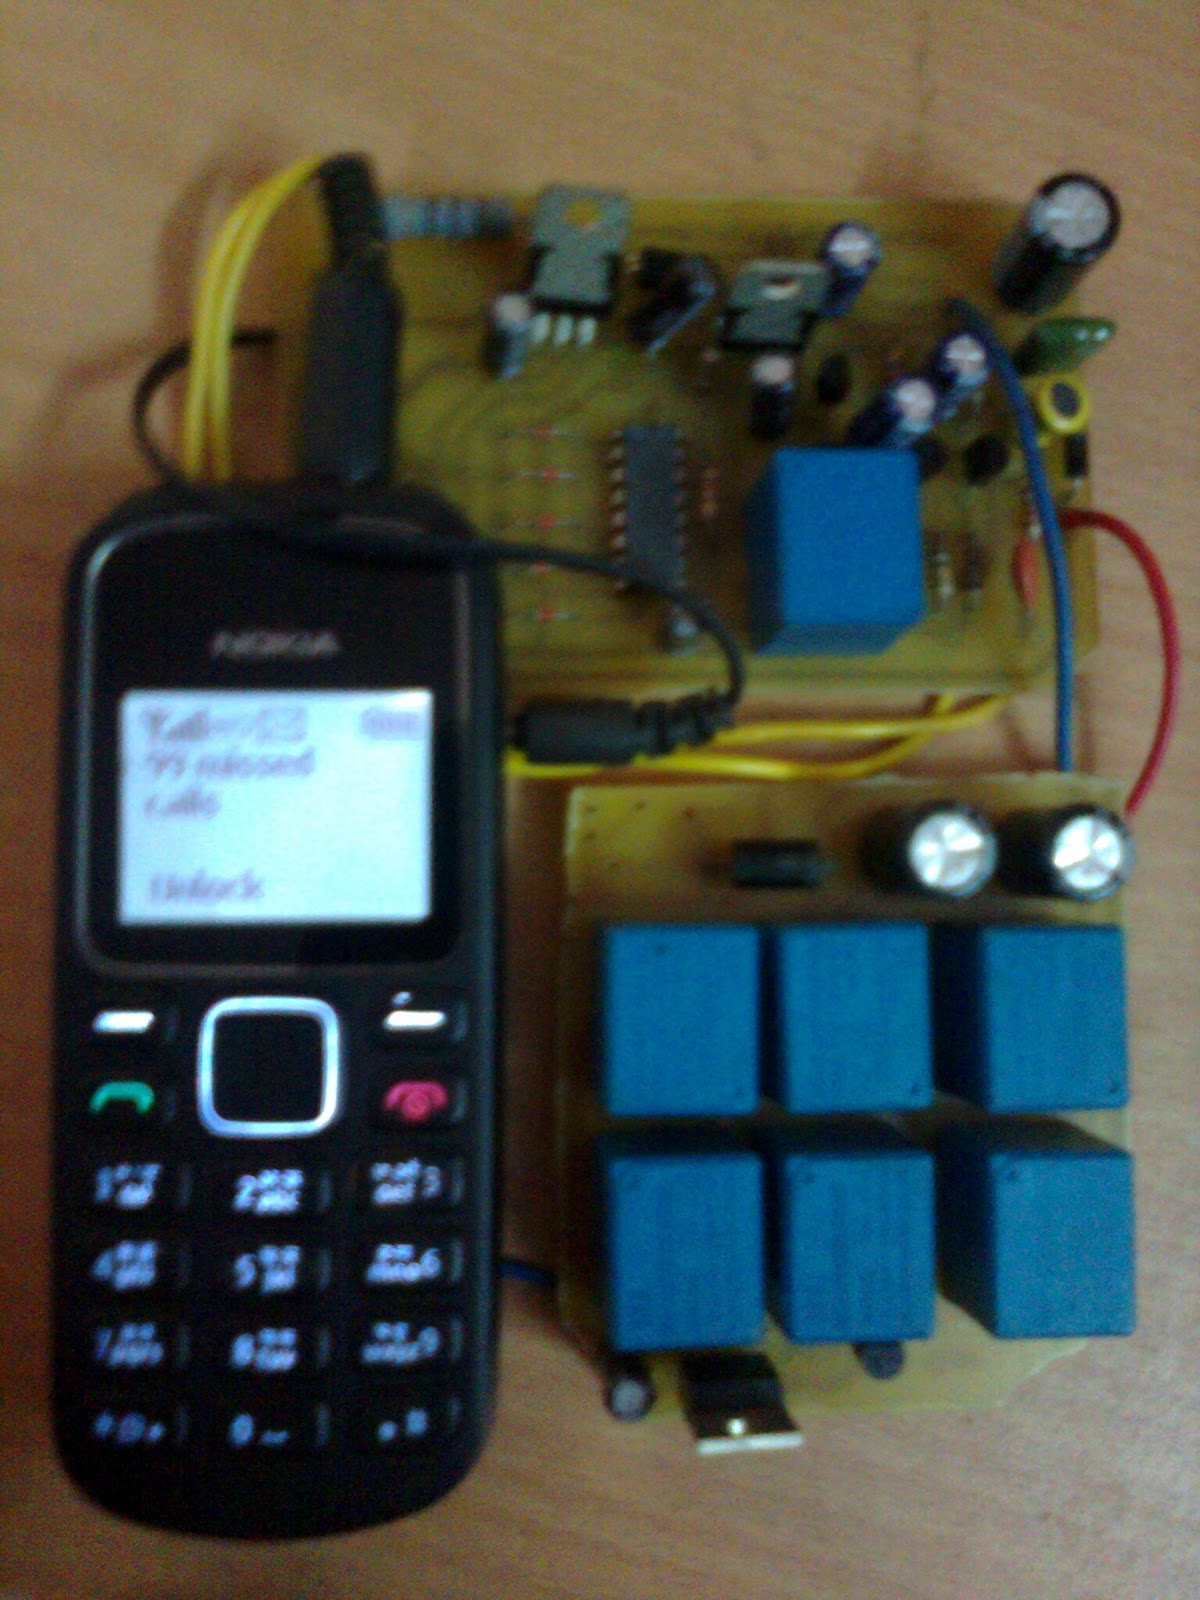 Homemade Circuit Designs Just For You Model And Remote Control Schematics Electronics Circuits The System Will Faithfully Respond To Every Call Made From Your Cell Phone Alternately Switch Connected Load On Off As Per